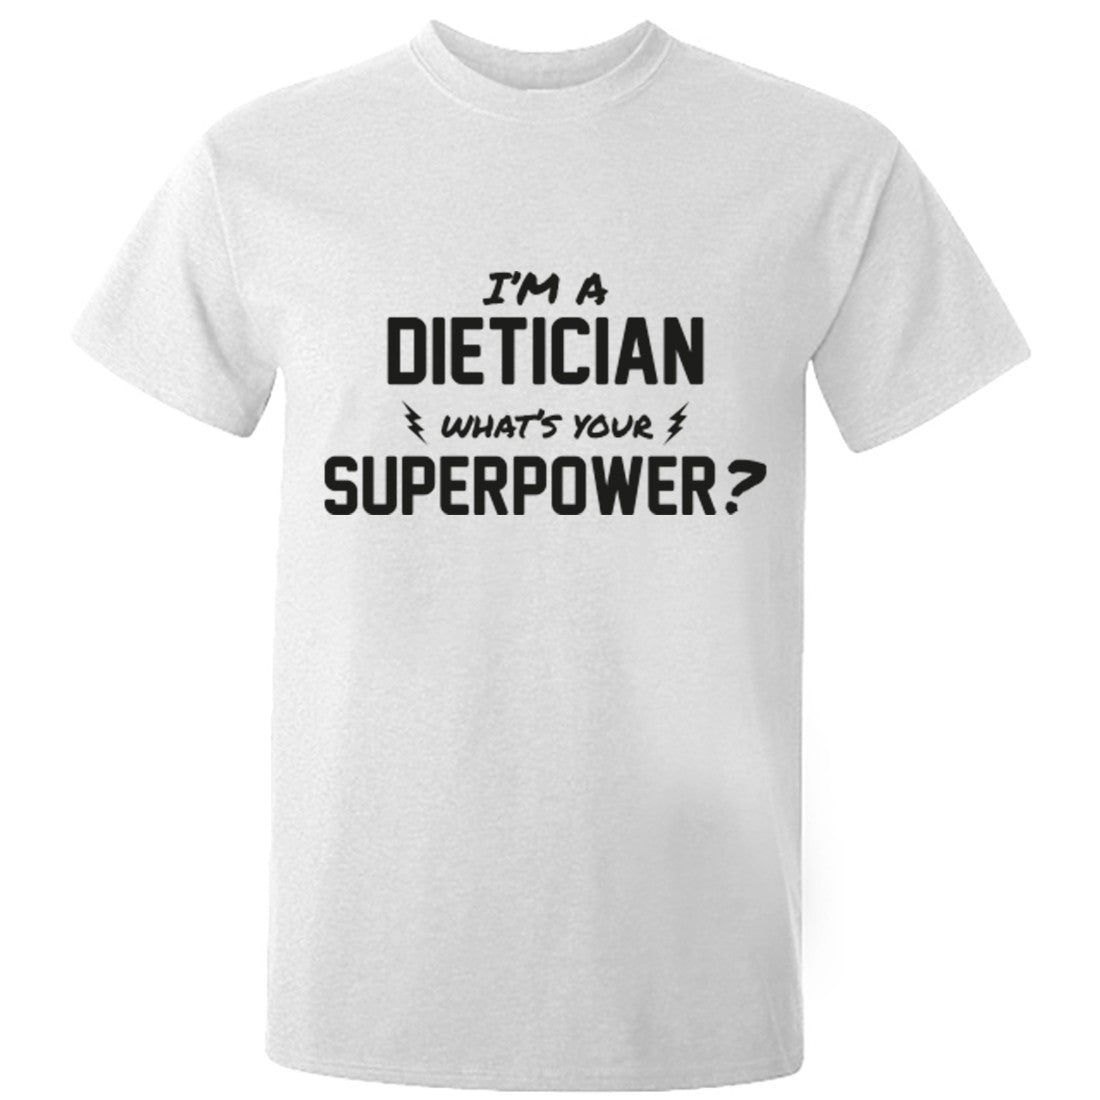 I'm A Dietician What's Your Superpower? Unisex Fit T-Shirt K0721 - Illustrated Identity Ltd.